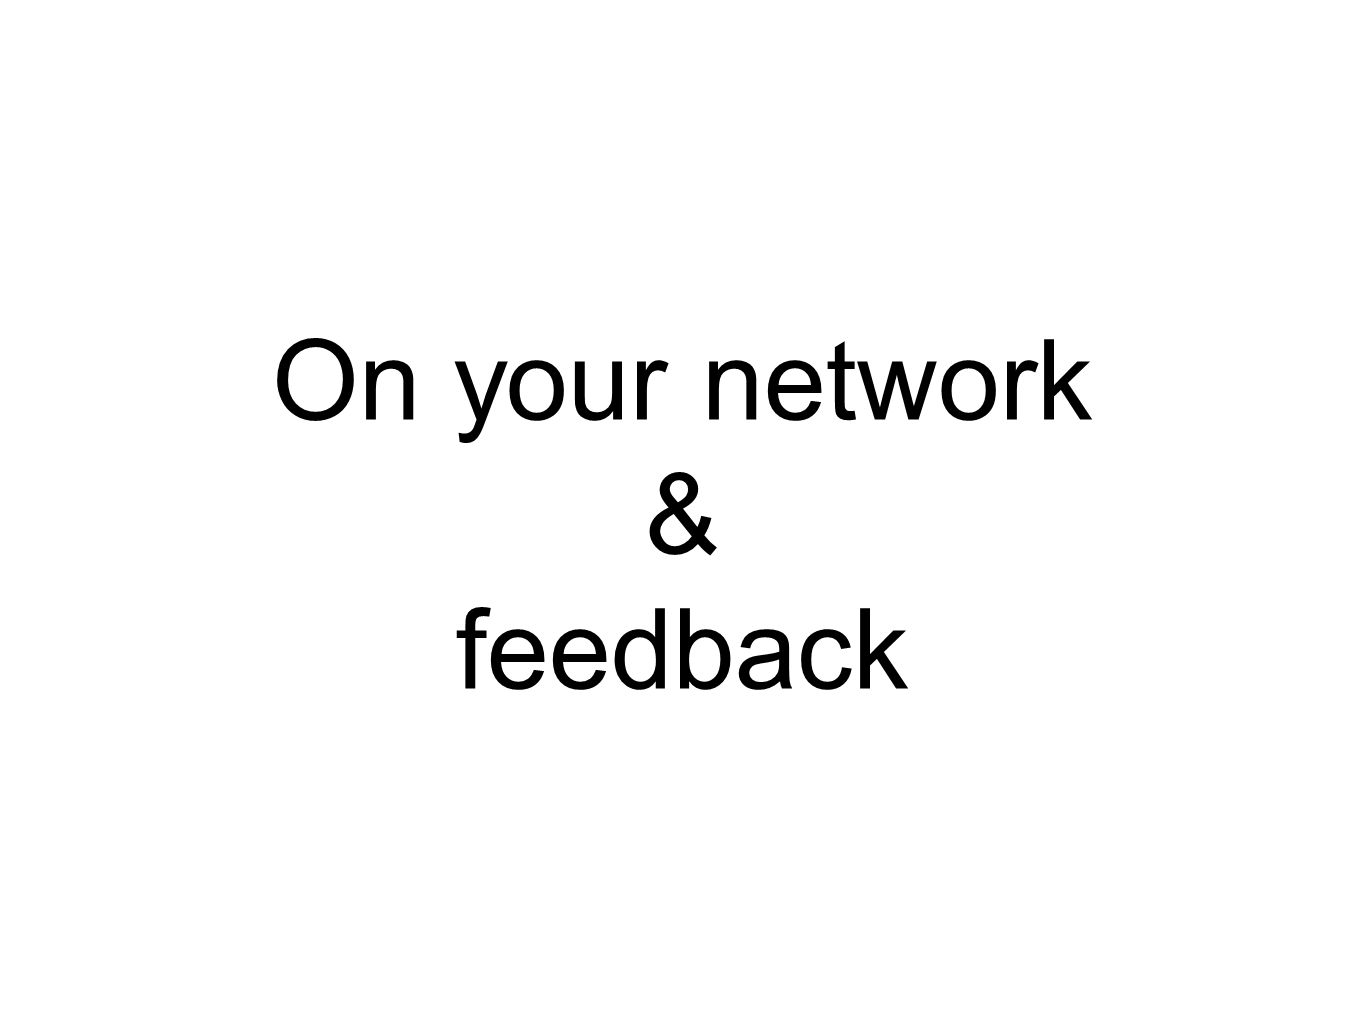 On your network & feedback